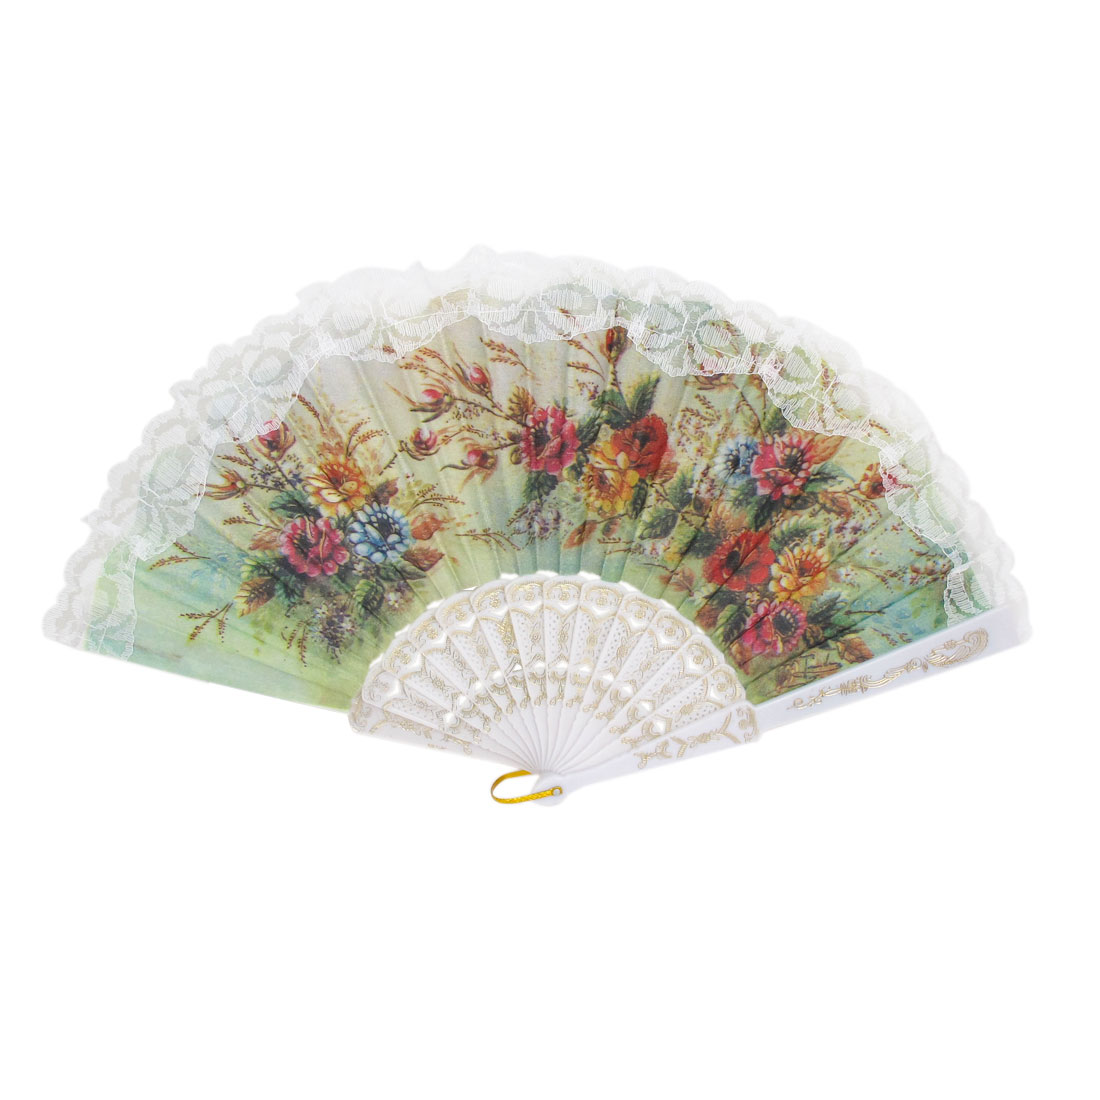 Women Wedding Party Plastic Hollow out Frame Hanging D Ring Folding Hand Fan White